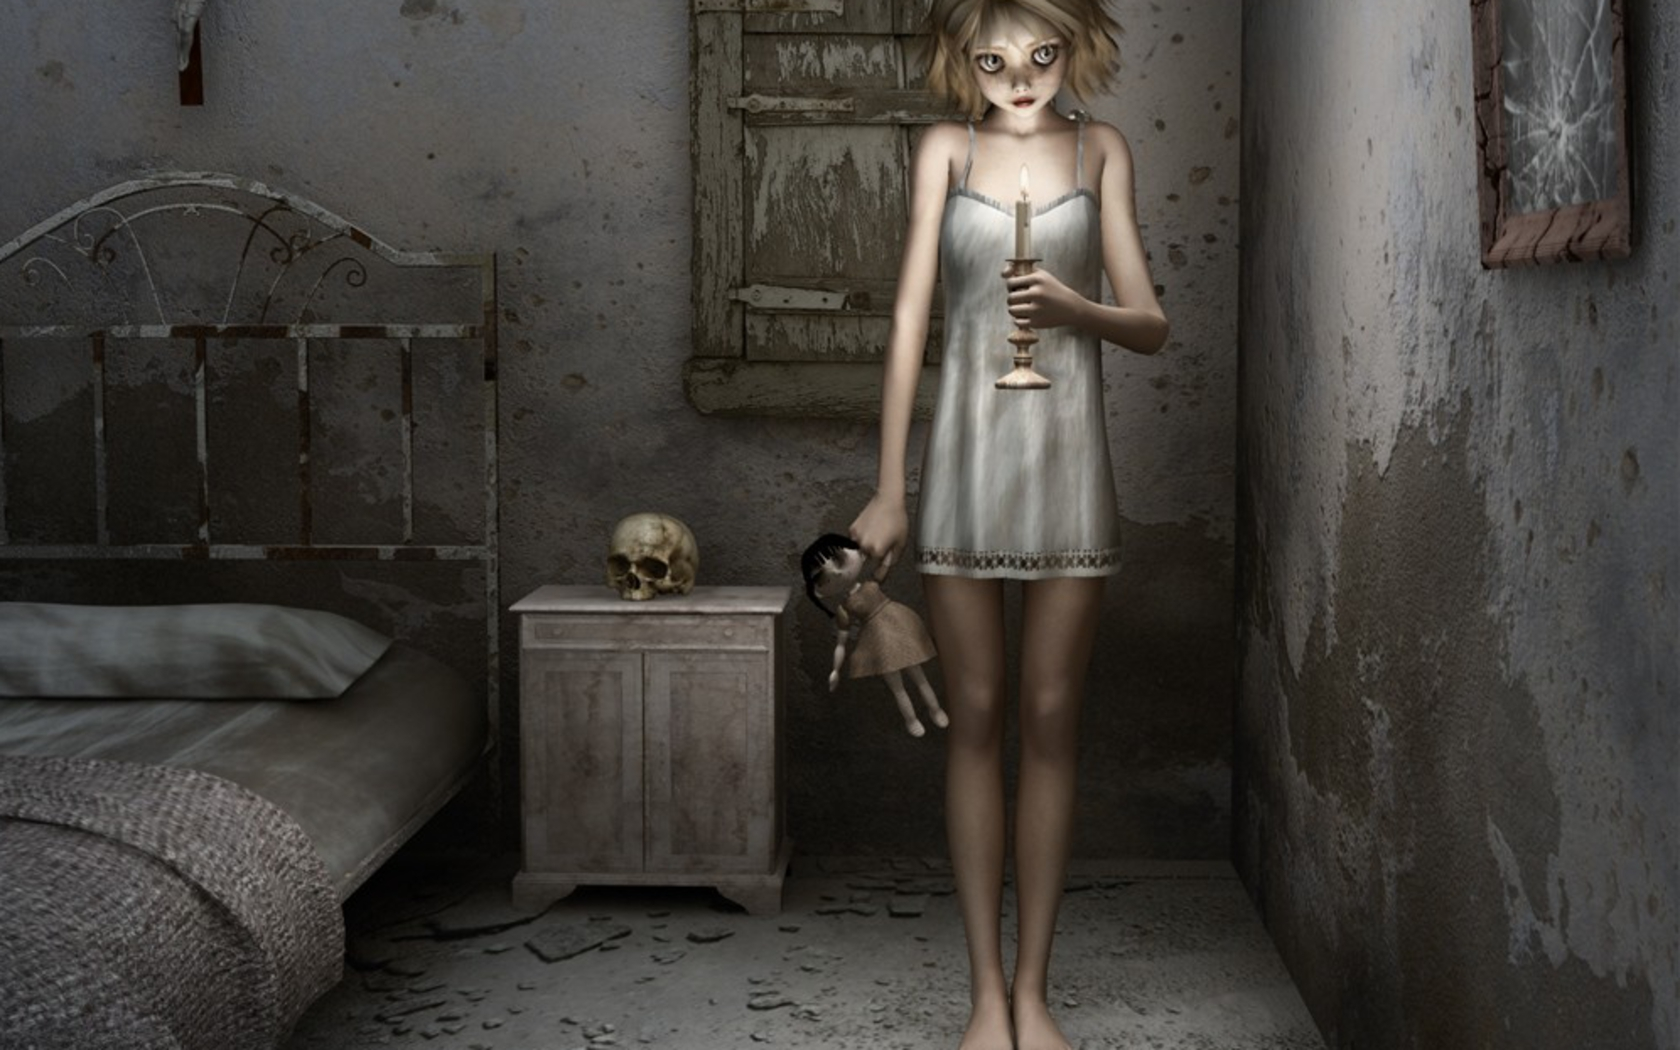 Ghost Girl Horror Wallpaper For Iphone Creepy Girl Wallpaper And Background Image 1680x1050